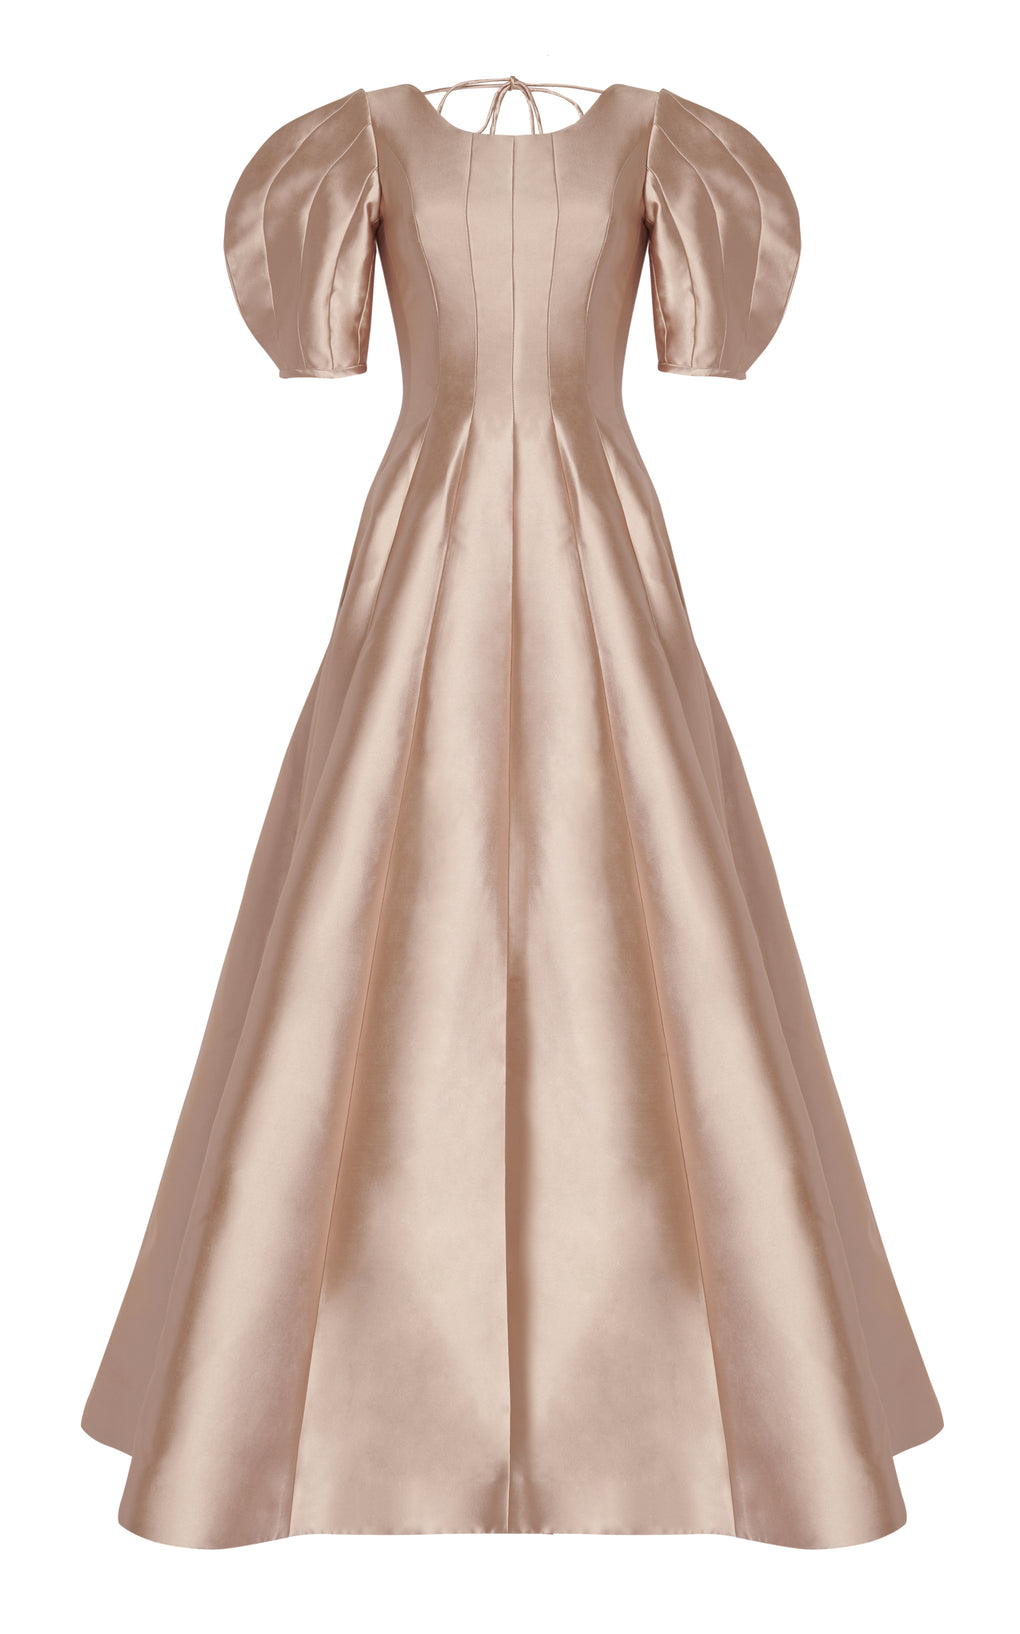 Puff sleeve gown with open back and tie detail